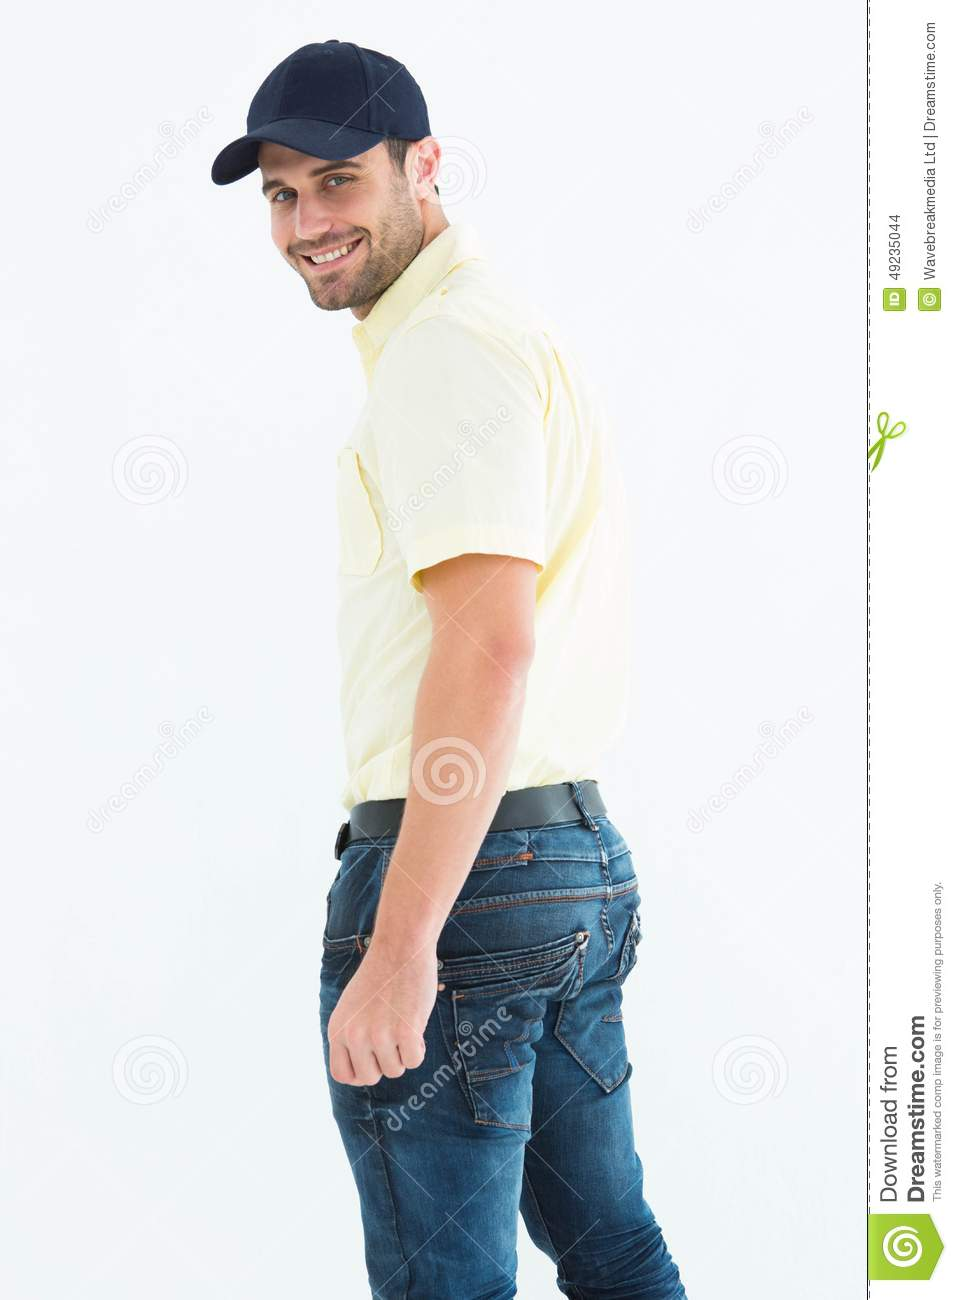 b02c388093ddc Portrait of happy delivery man wearing baseball cap on white background